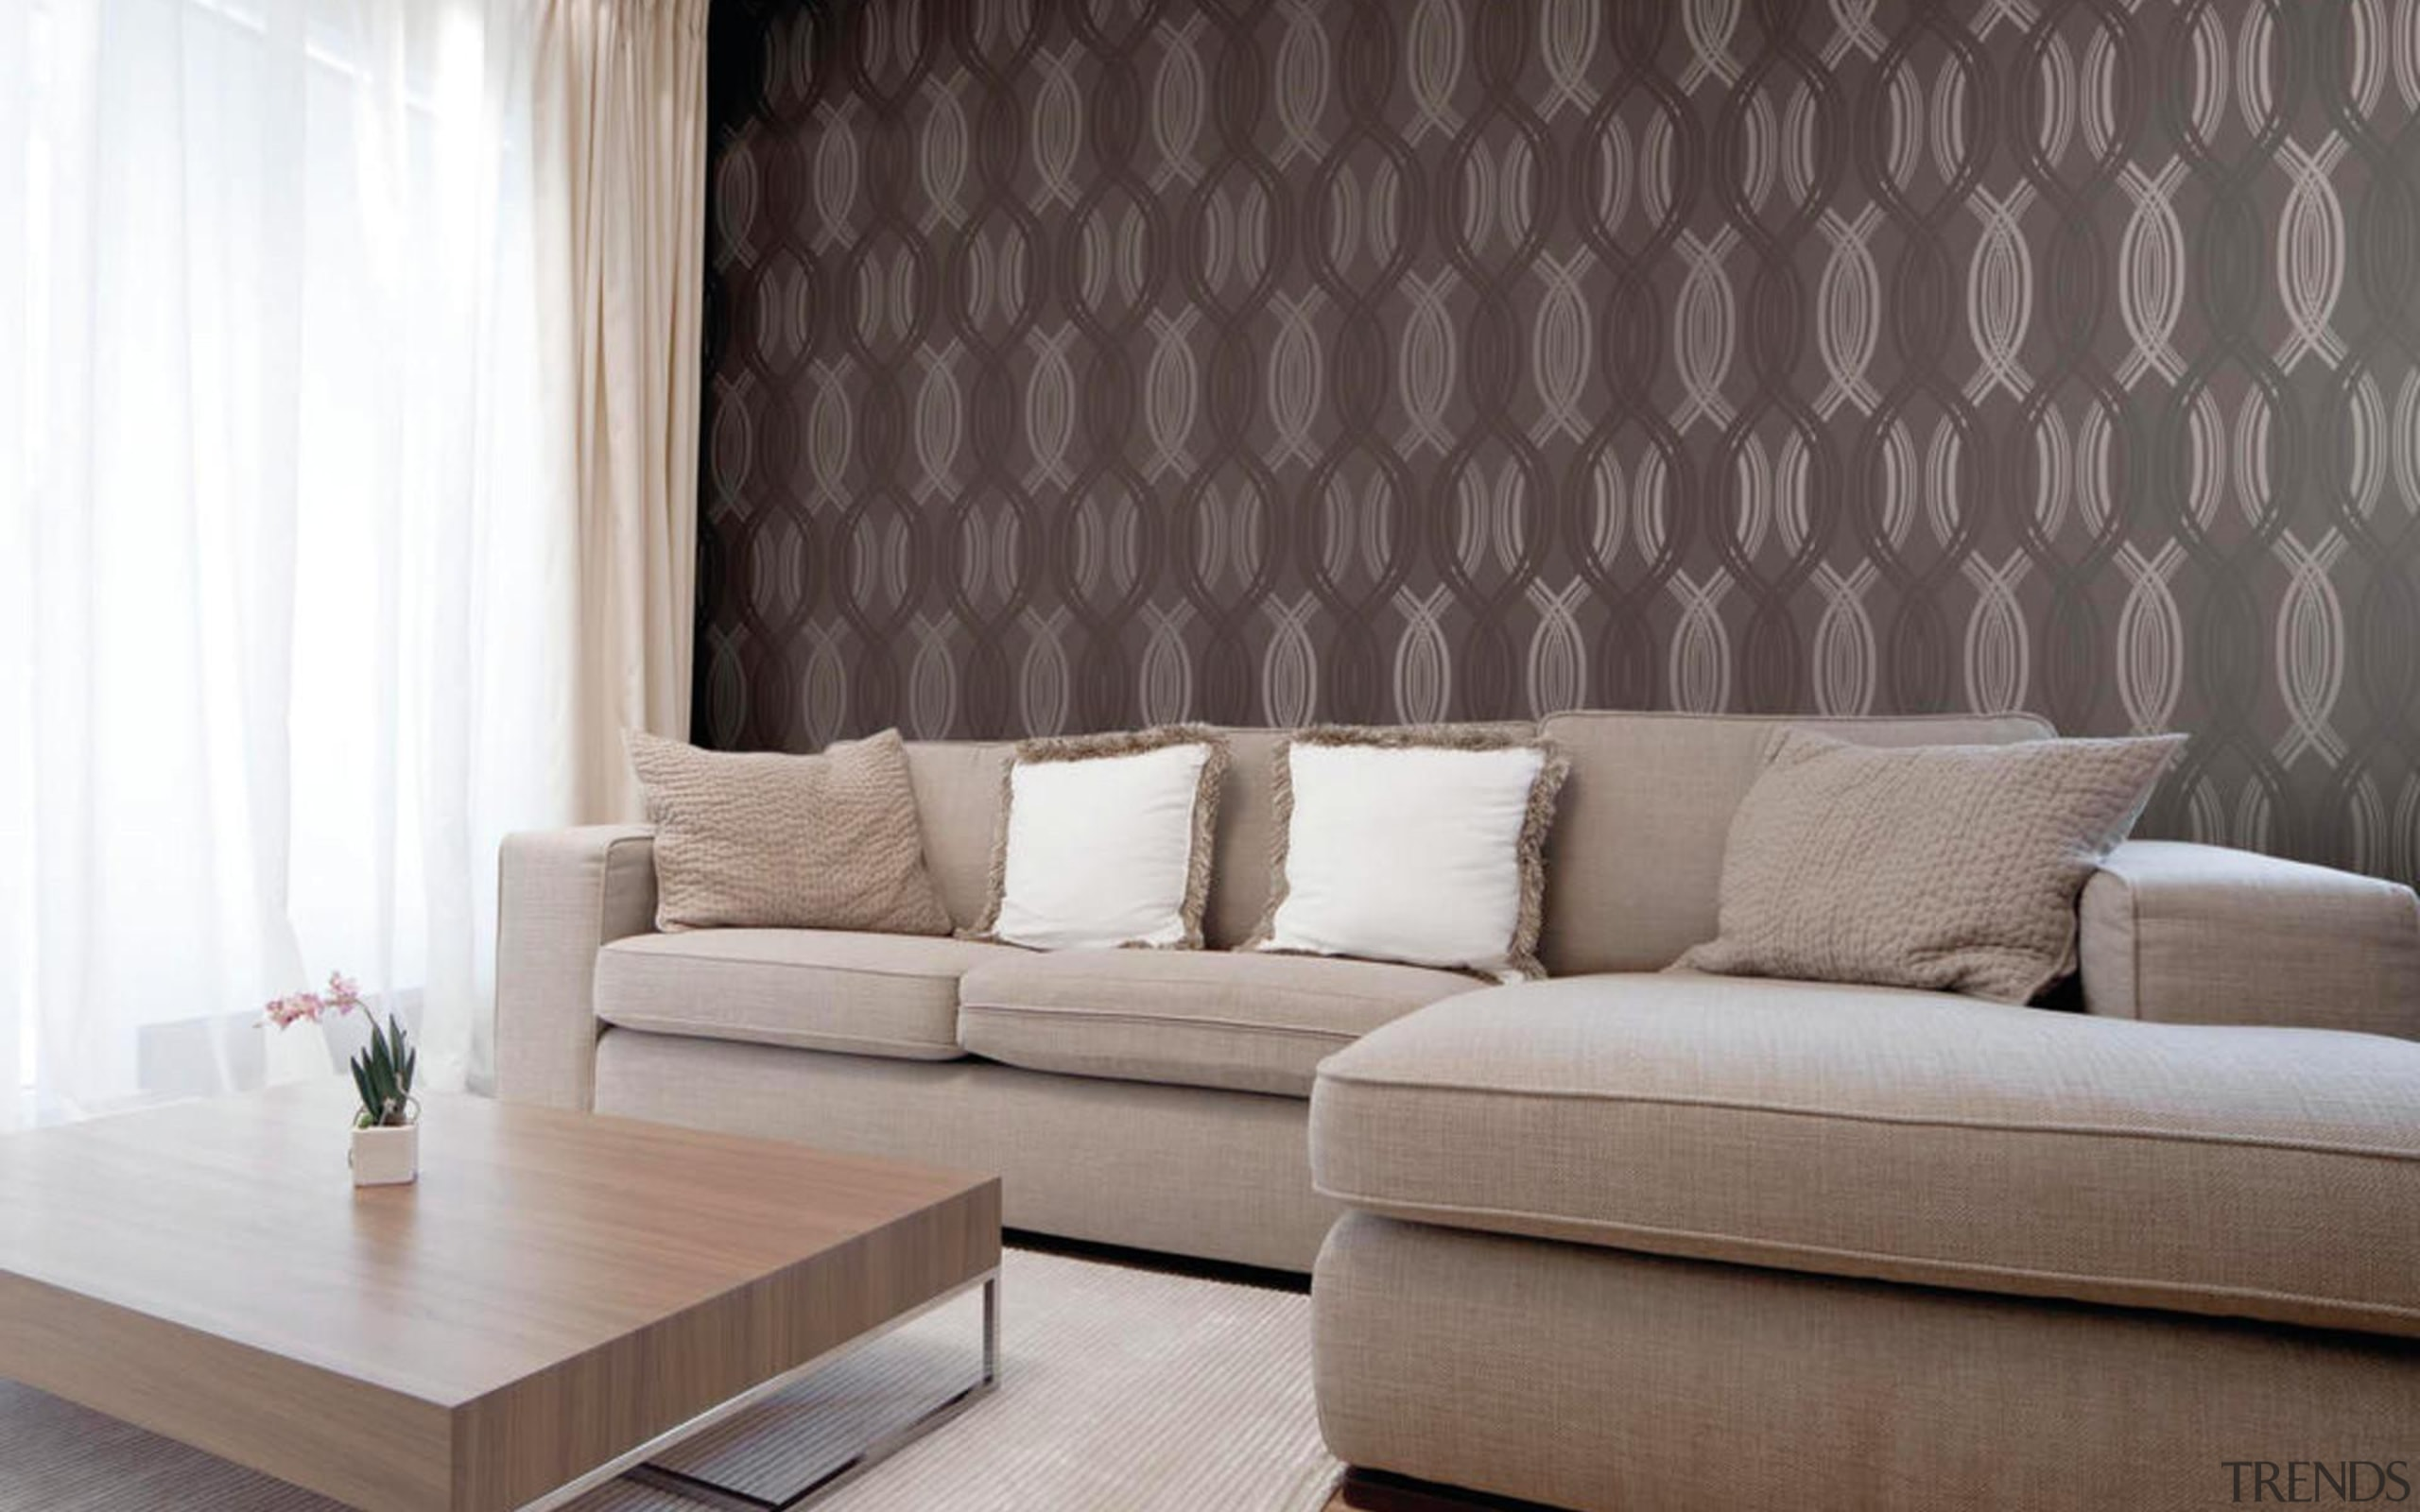 Saphyr Roomset - Saphyr II Range - angle angle, coffee table, couch, curtain, floor, furniture, home, interior design, living room, loveseat, room, sofa bed, suite, table, wall, window, window blind, window covering, window treatment, gray